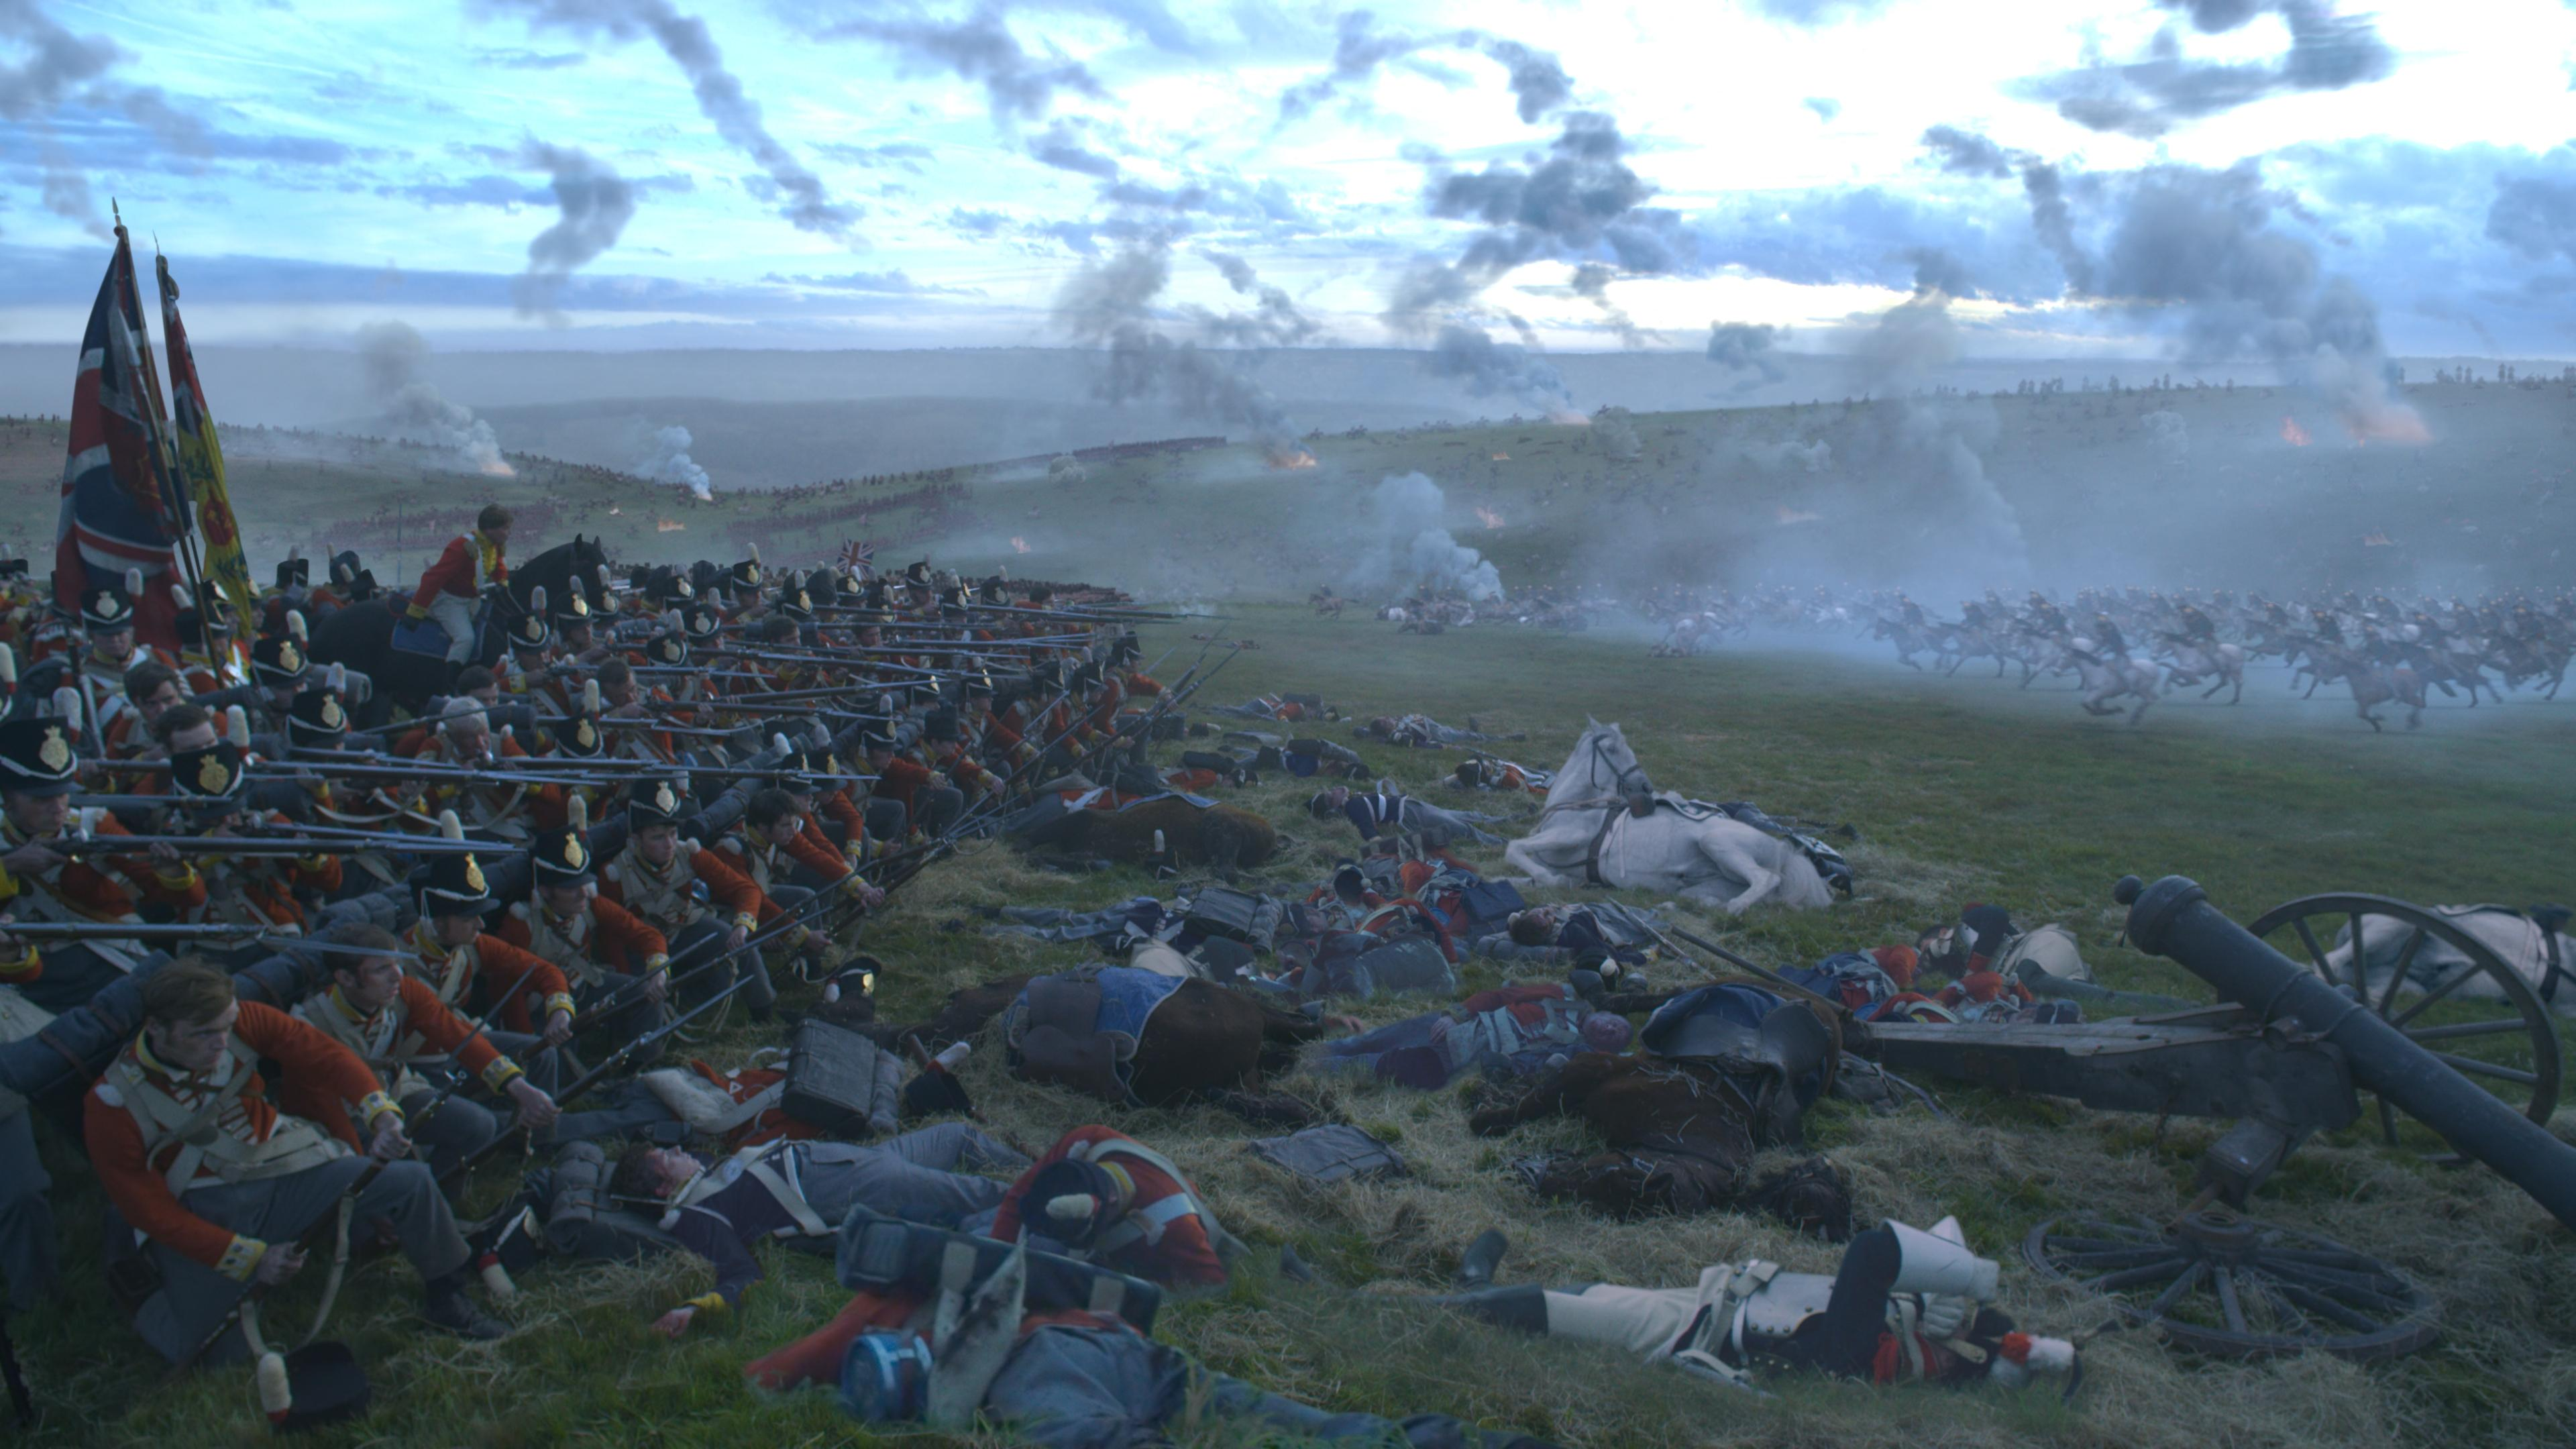 Many of the elements in this image of the Battle of Waterloo were added digitally, such as the charging armies, wounded soldiers and smoke.